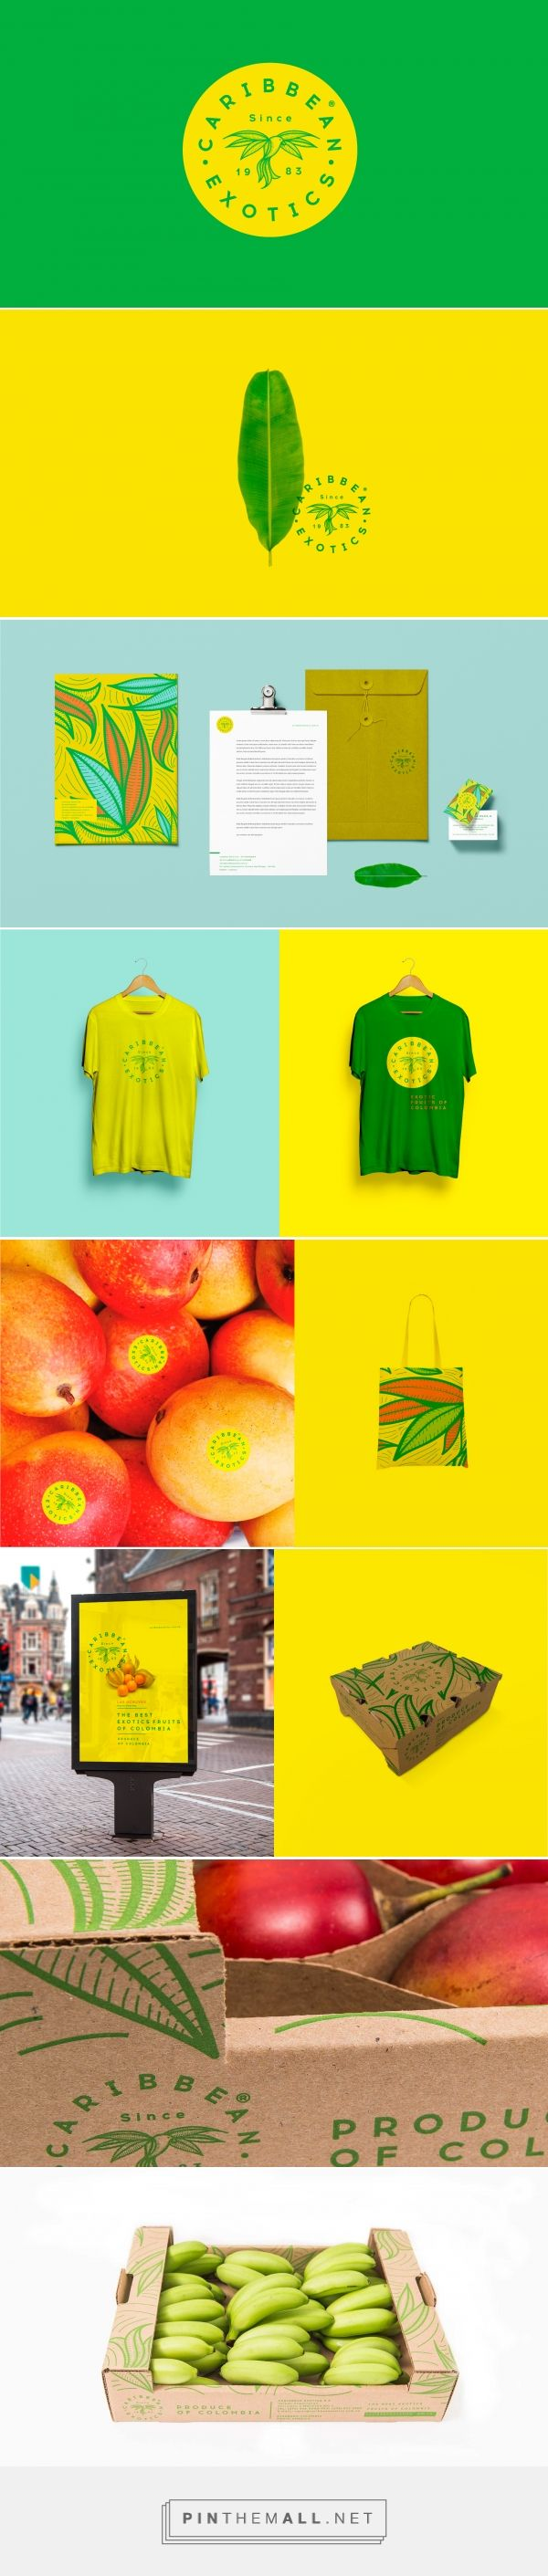 Caribbean Exotics Fruit Branding and Packaging by Creamos Agency